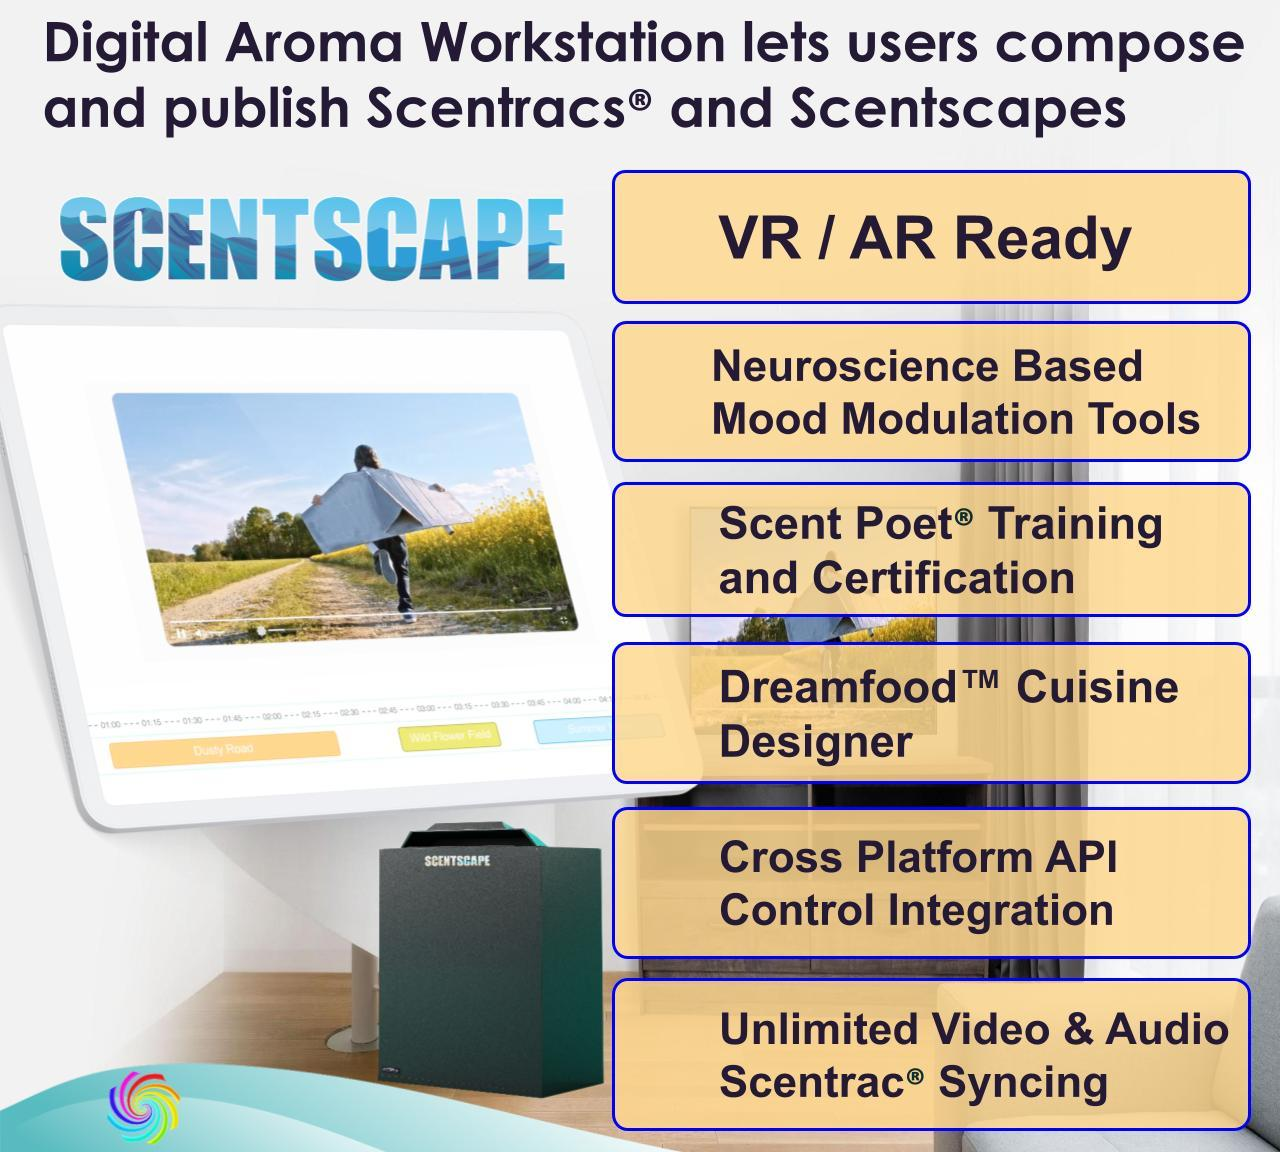 Scentscape Digital Aroma Workstation lets users compose and publish Scentracs and scentscapes for various kinds of media, such as video, music (audio), 360 video, VR and AR